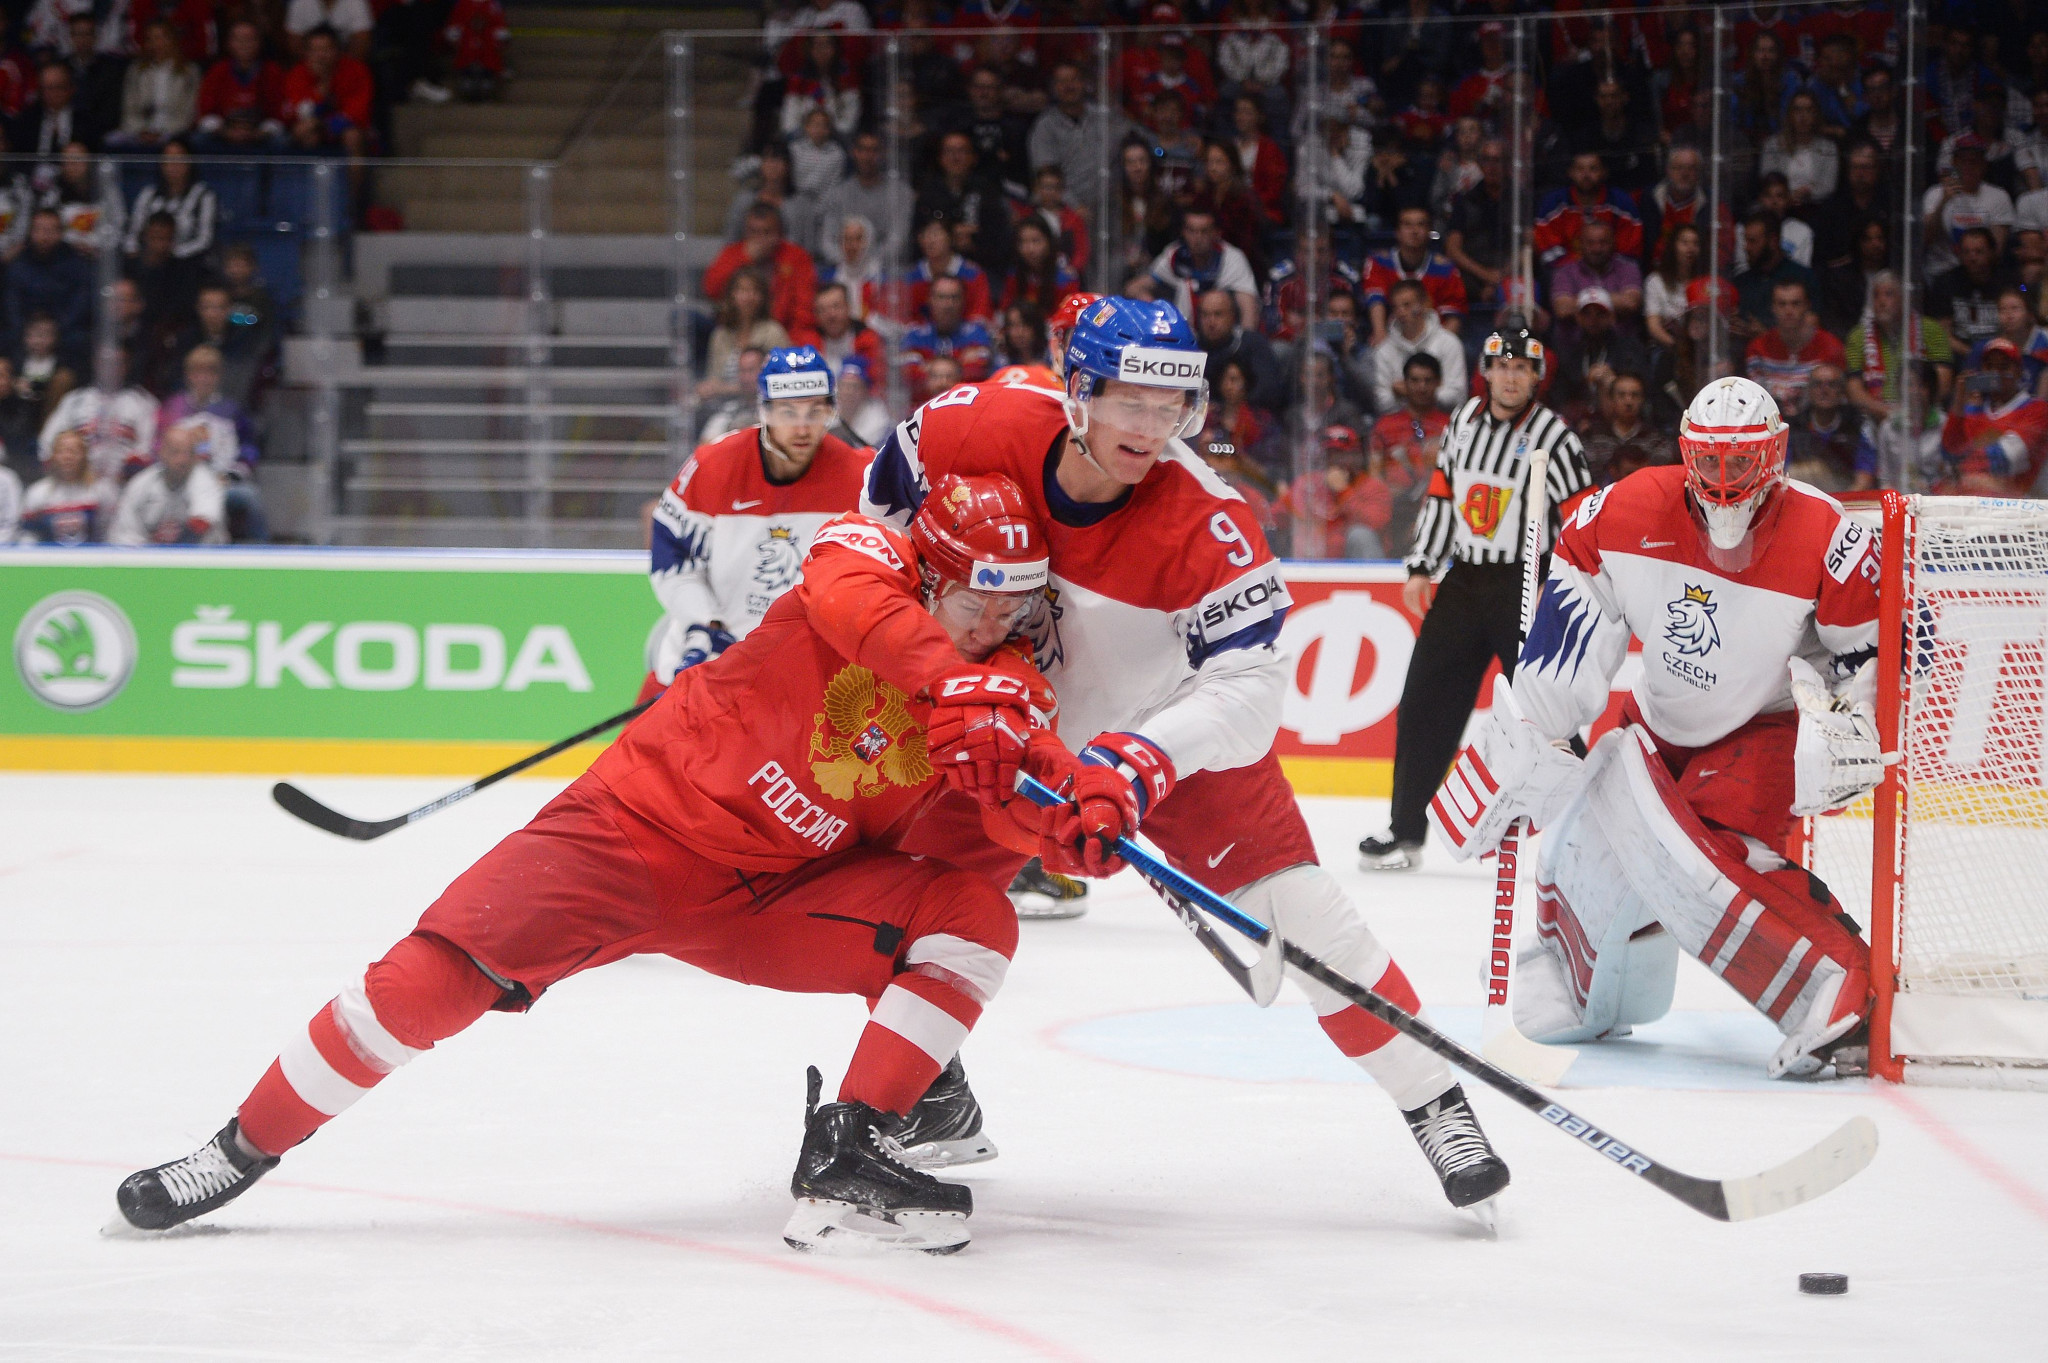 Sponsors such as Skoda had threatened to withdraw from the IIHF Men's World Championship if it remained in Belarus ©Getty Images